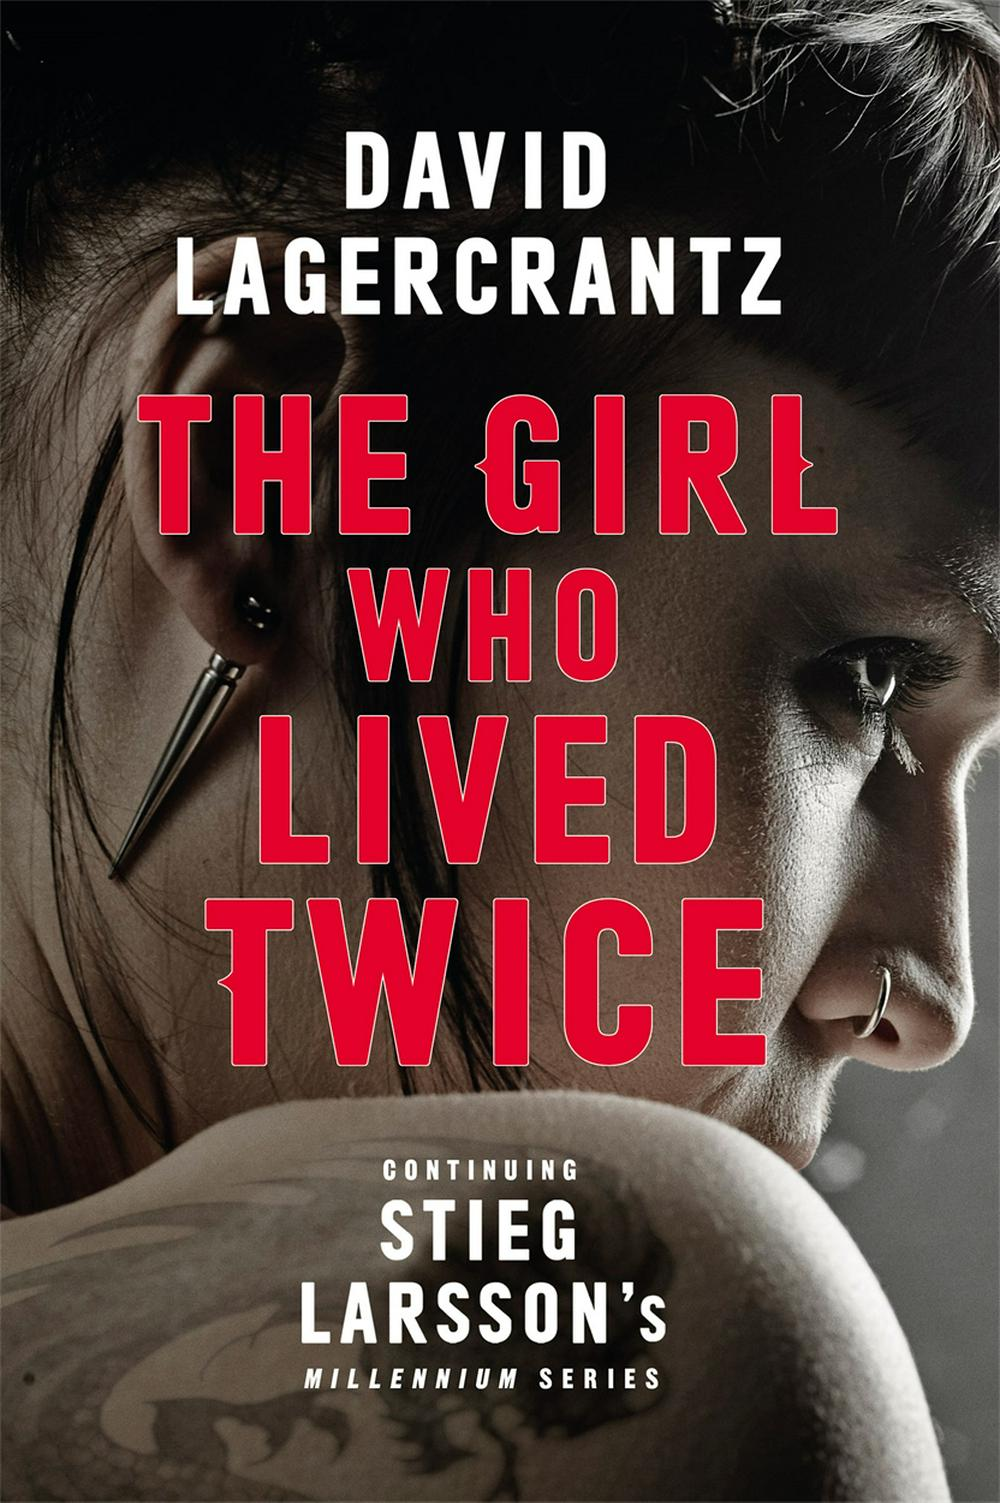 Millennium 6: Continuing Stieg Larsson's Dragon Tattoo series